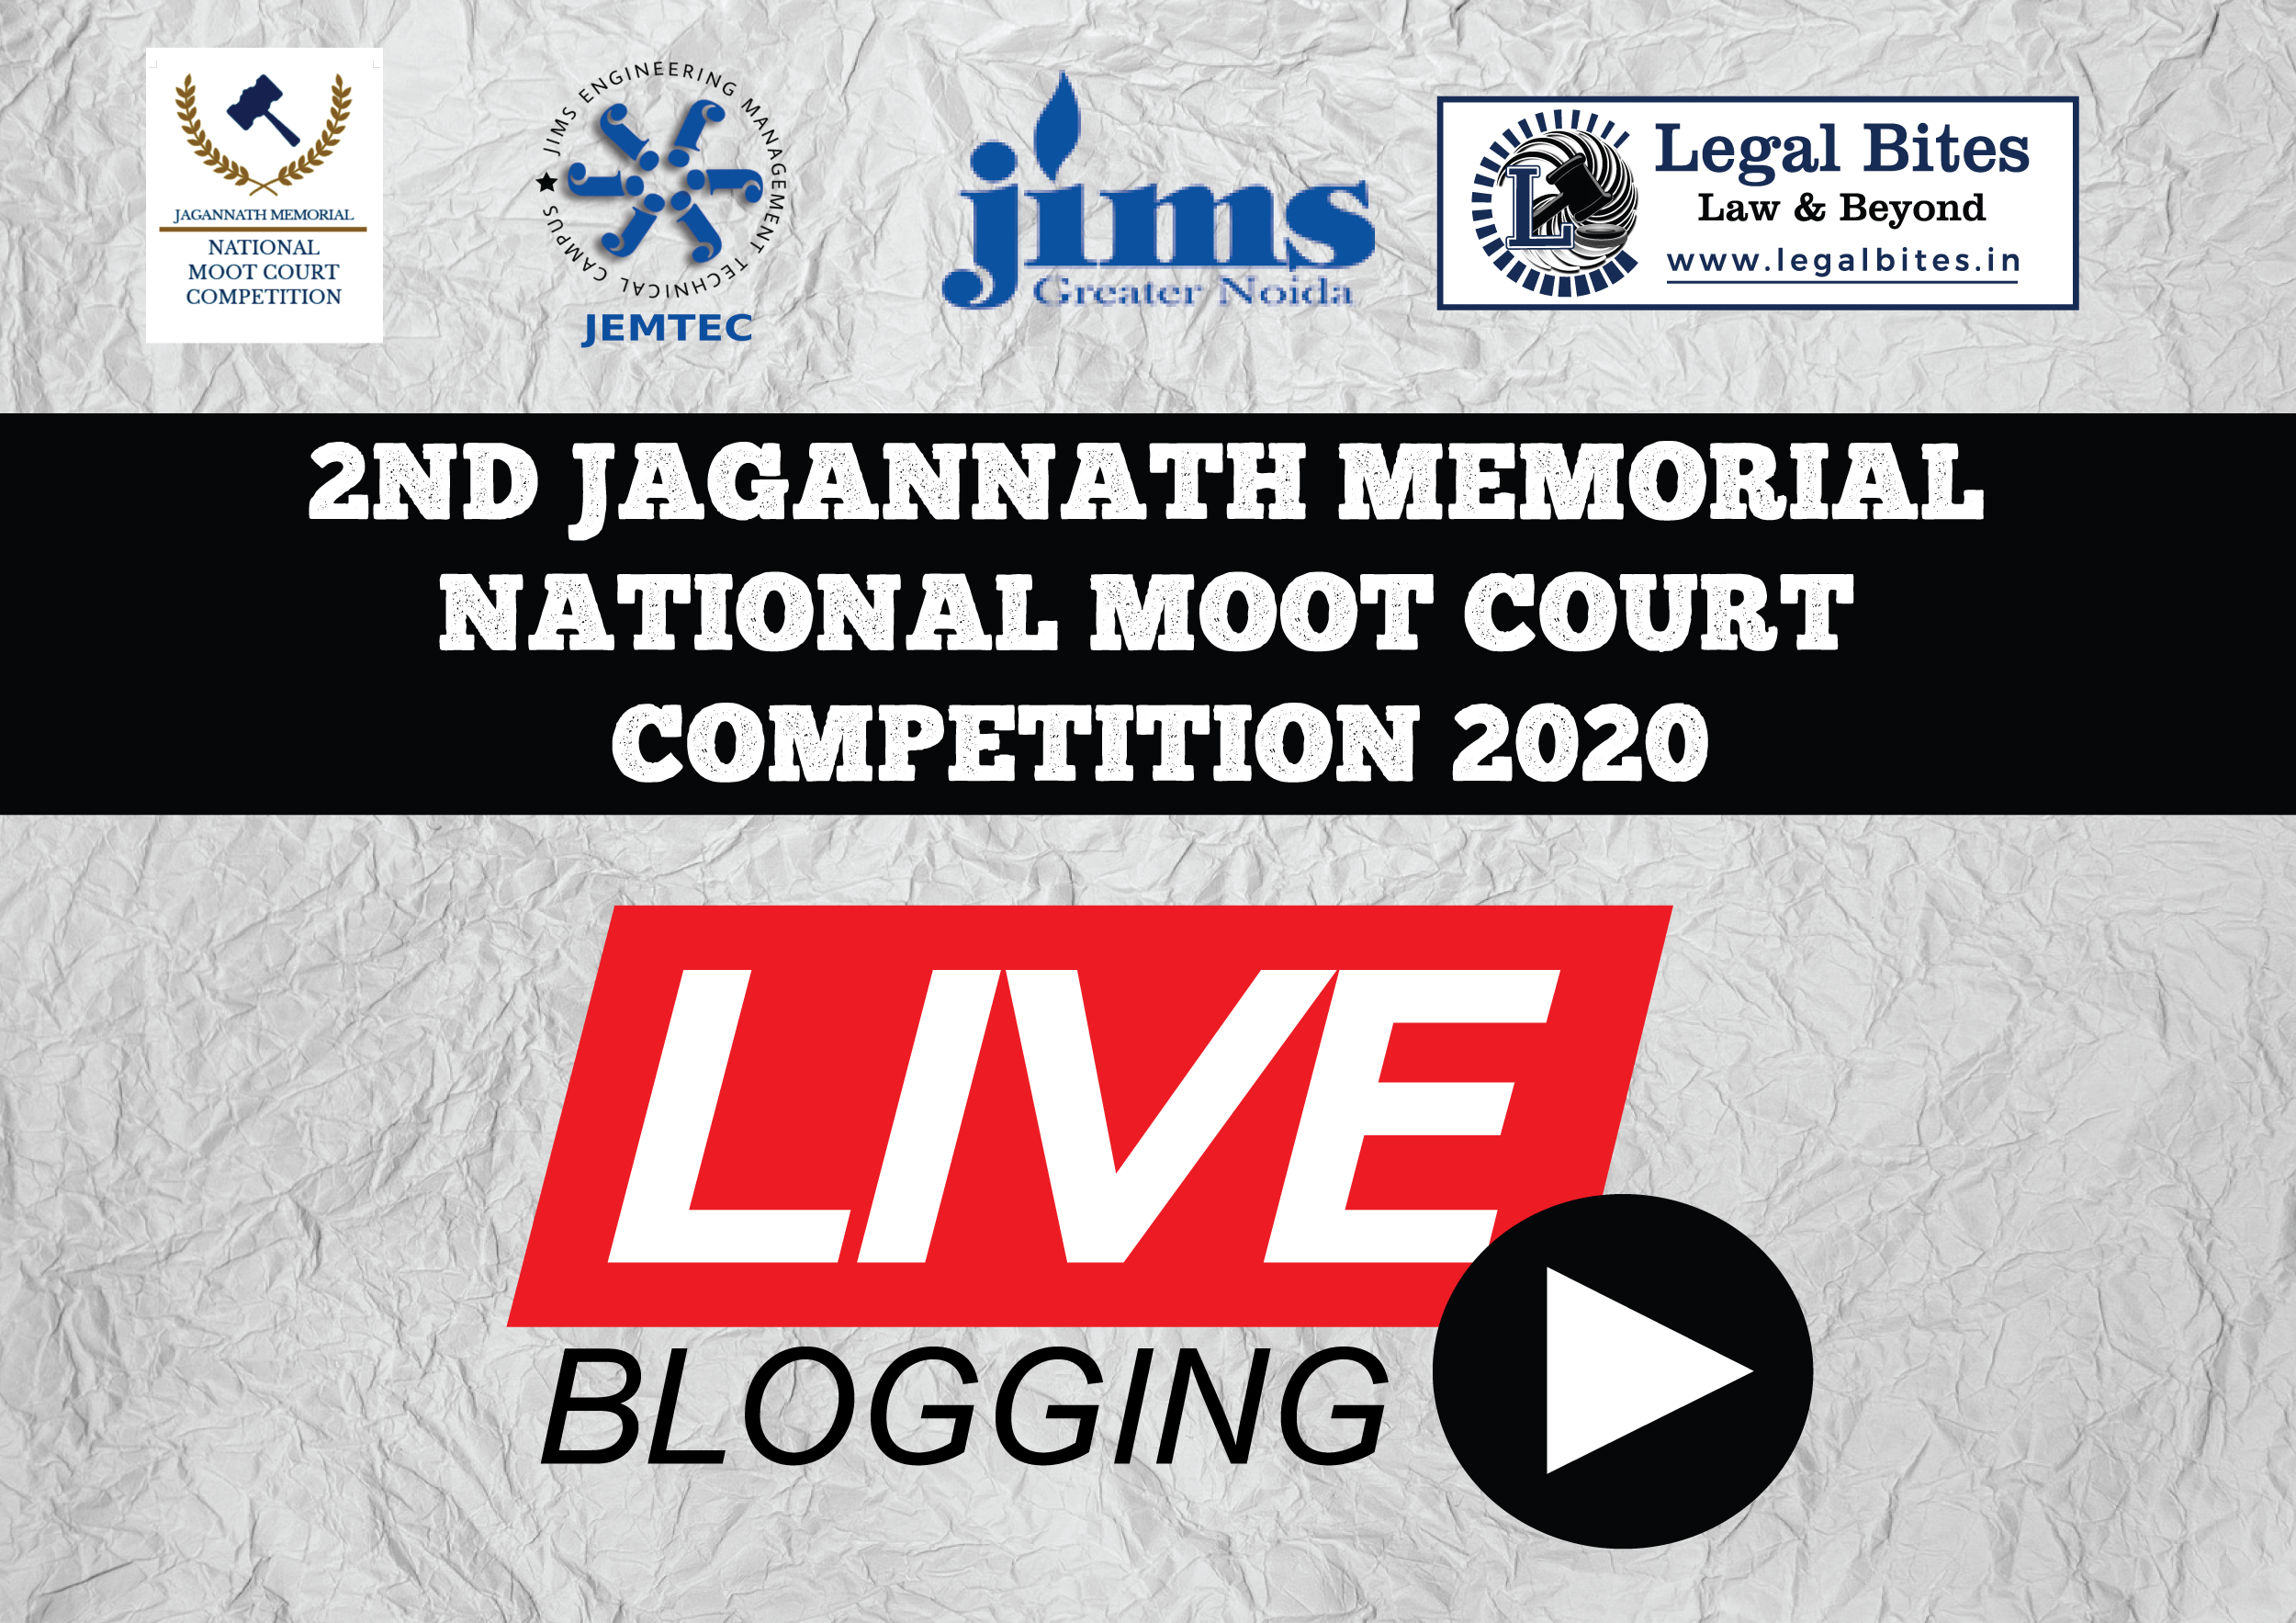 Live: 2nd Jagannath Memorial National Moot Court Competition 2020